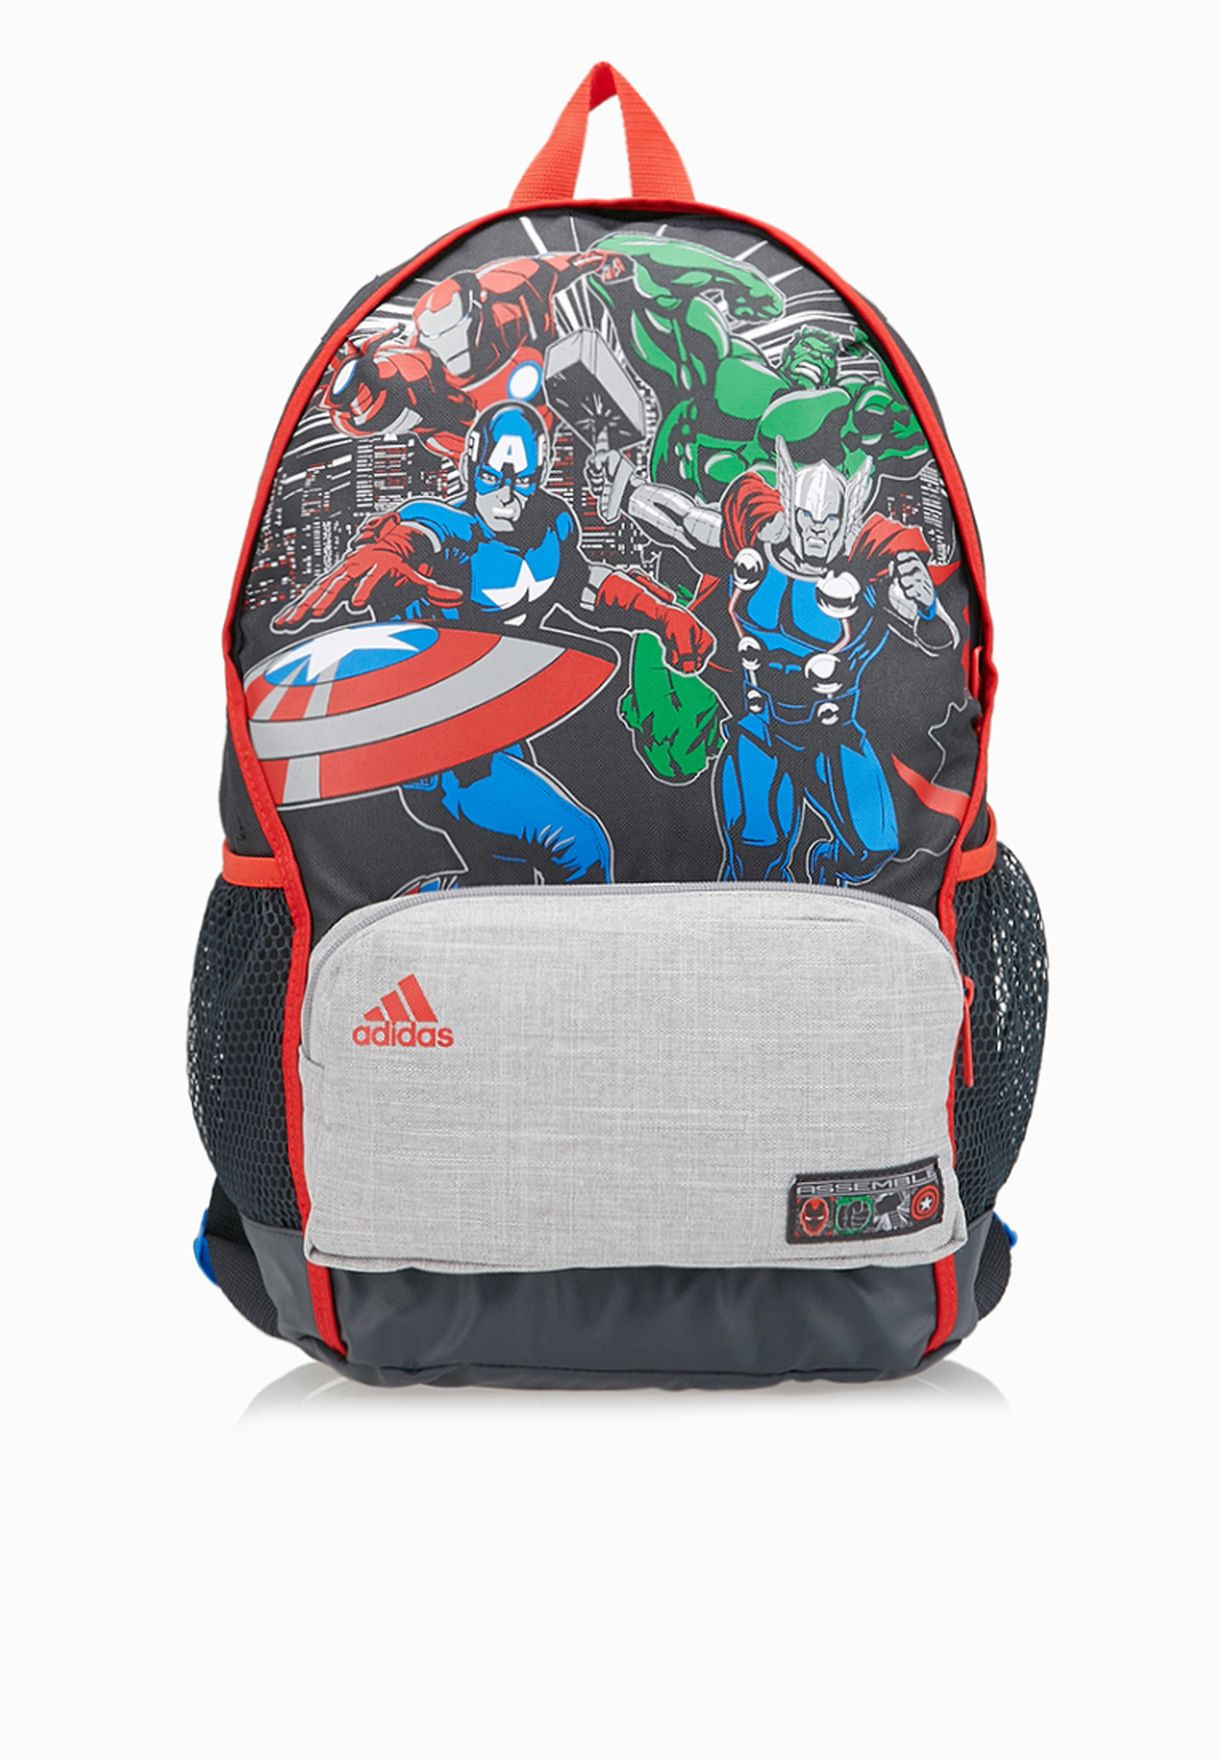 f411203bdadf Shop adidas prints The Avengers Kids Backpack S14690 for Kids in Oman -  AD476AC76IRR